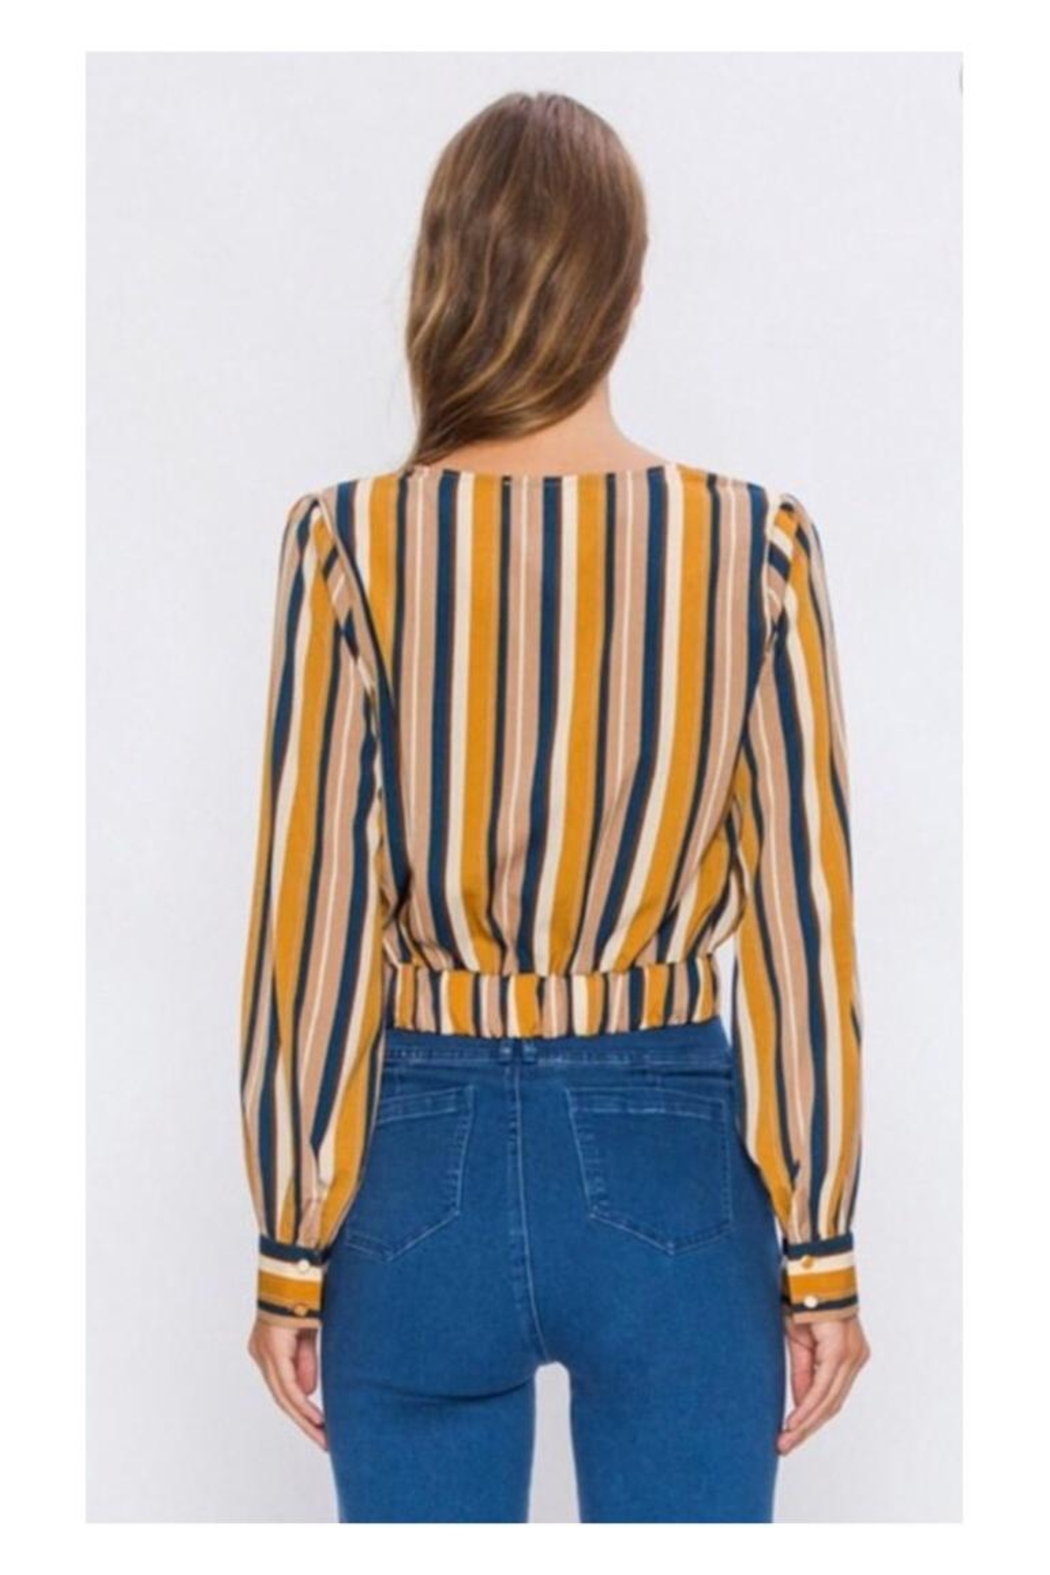 Polly & Esther Mustard/navy Stripe Top - Front Full Image